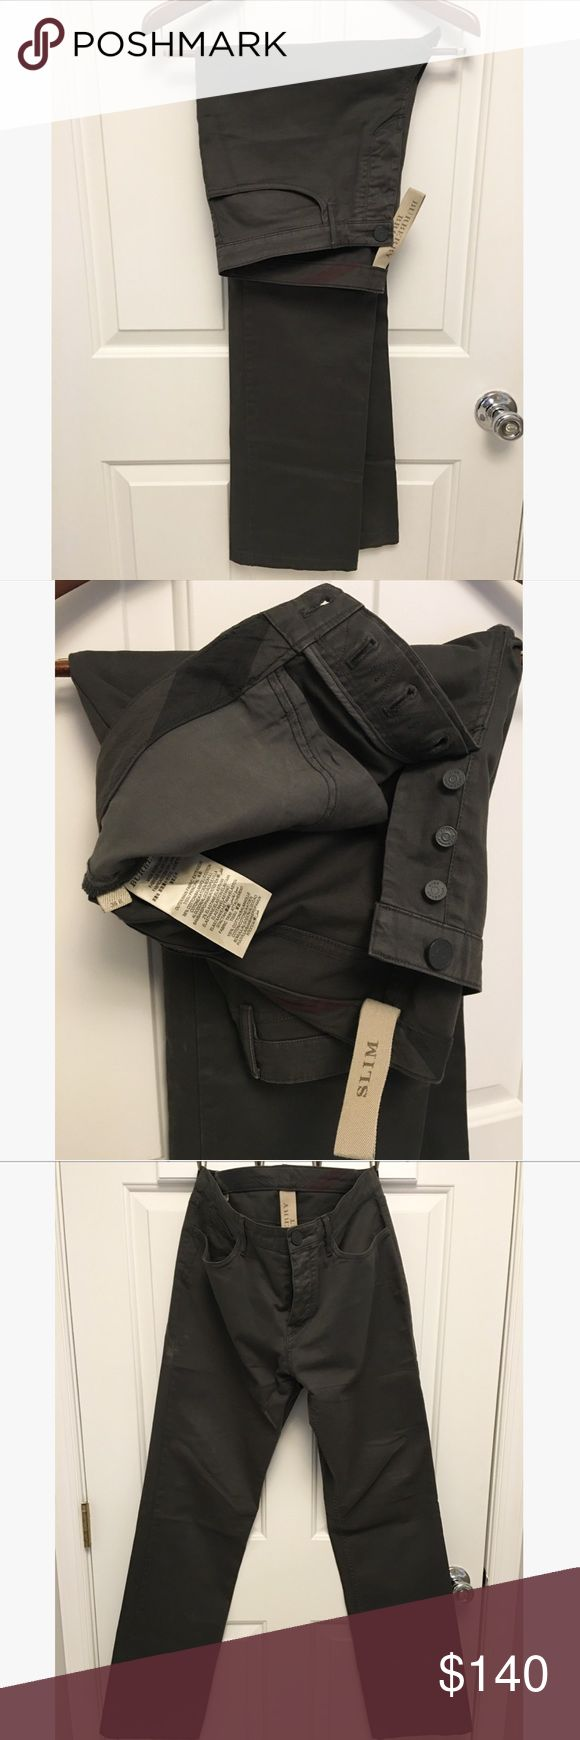 Burberry Slim Fit Chino-charcoal Like new and only worn once. Mint condition. Slim fit Burberry cotton twill chino in charcoal gray color. Fits true to size and sold just by waist size. Belt loops banded waist zip fly button closure. Two back pockets with Burberry emblem on one. Burberry Pants Chinos & Khakis